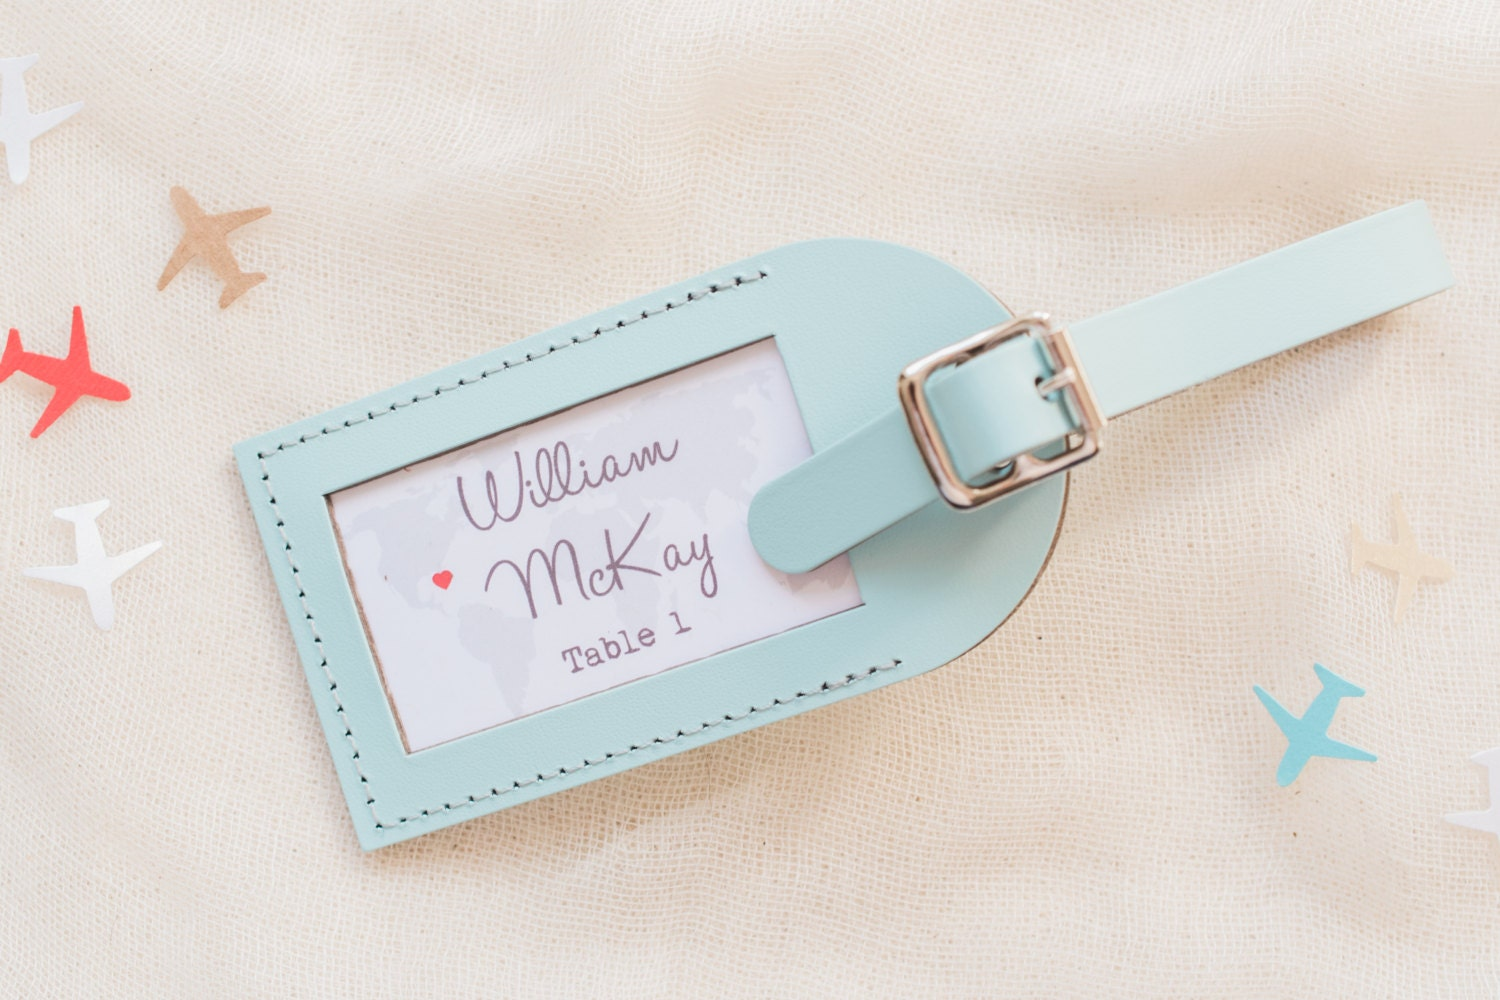 Wedding Favor Bag Tags : Wedding Favors Find Your Seat Escort Card Leather Luggage